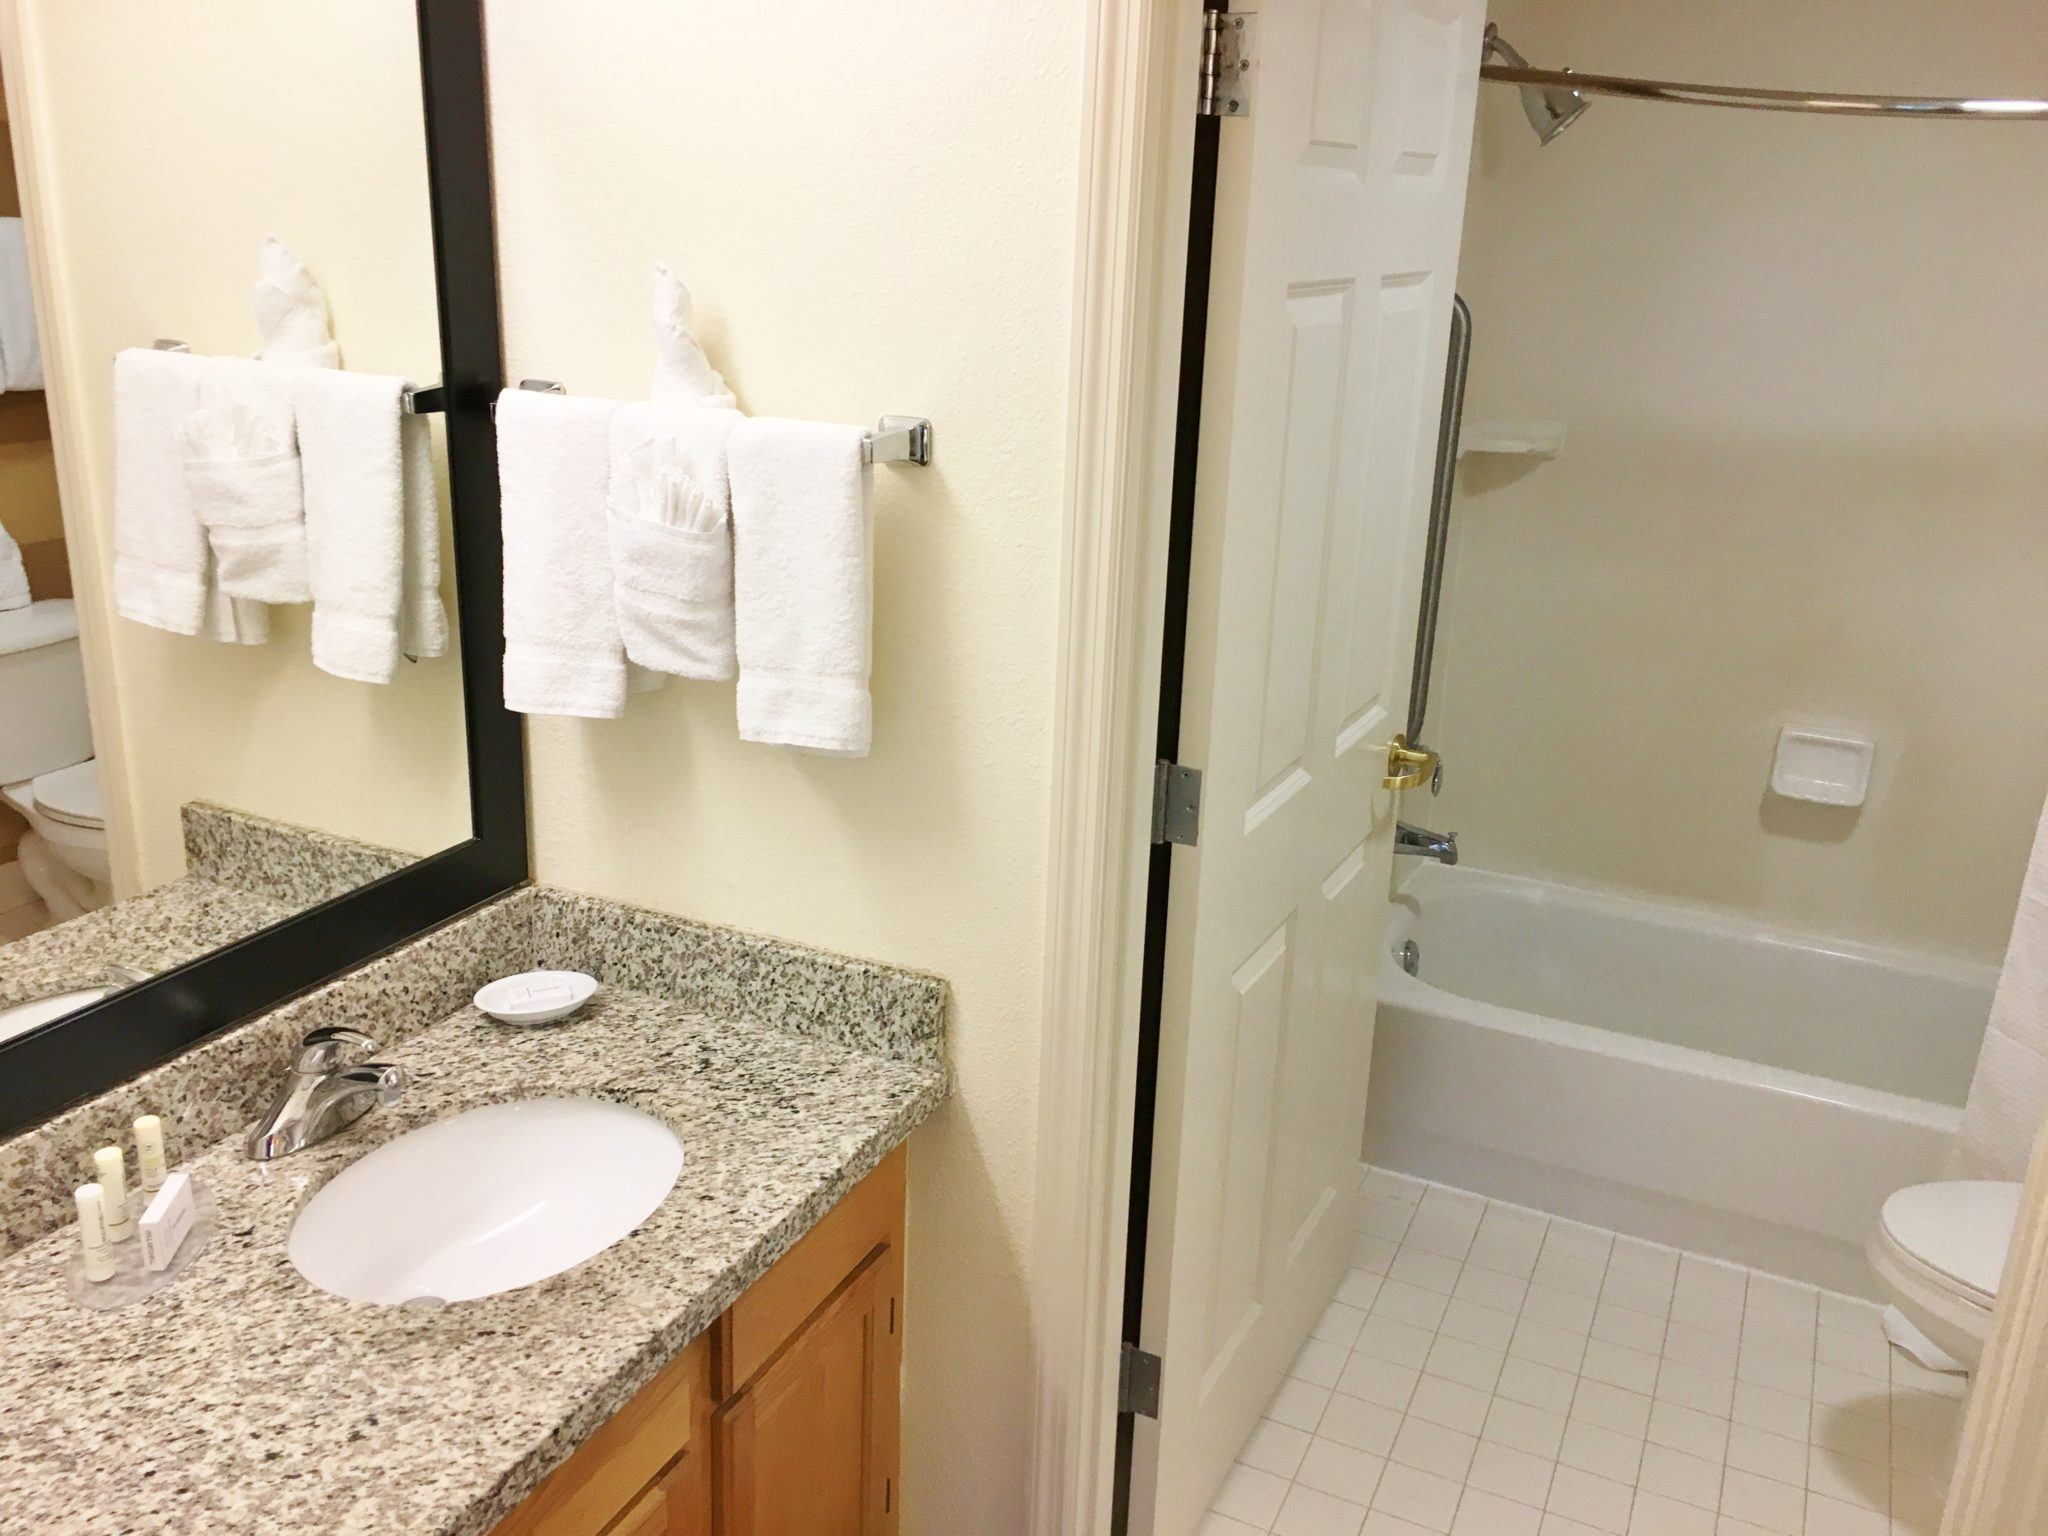 Bathrooms Residence Inn Naples Marriott Review Celebrity Radio By - Bathroom fixtures naples fl